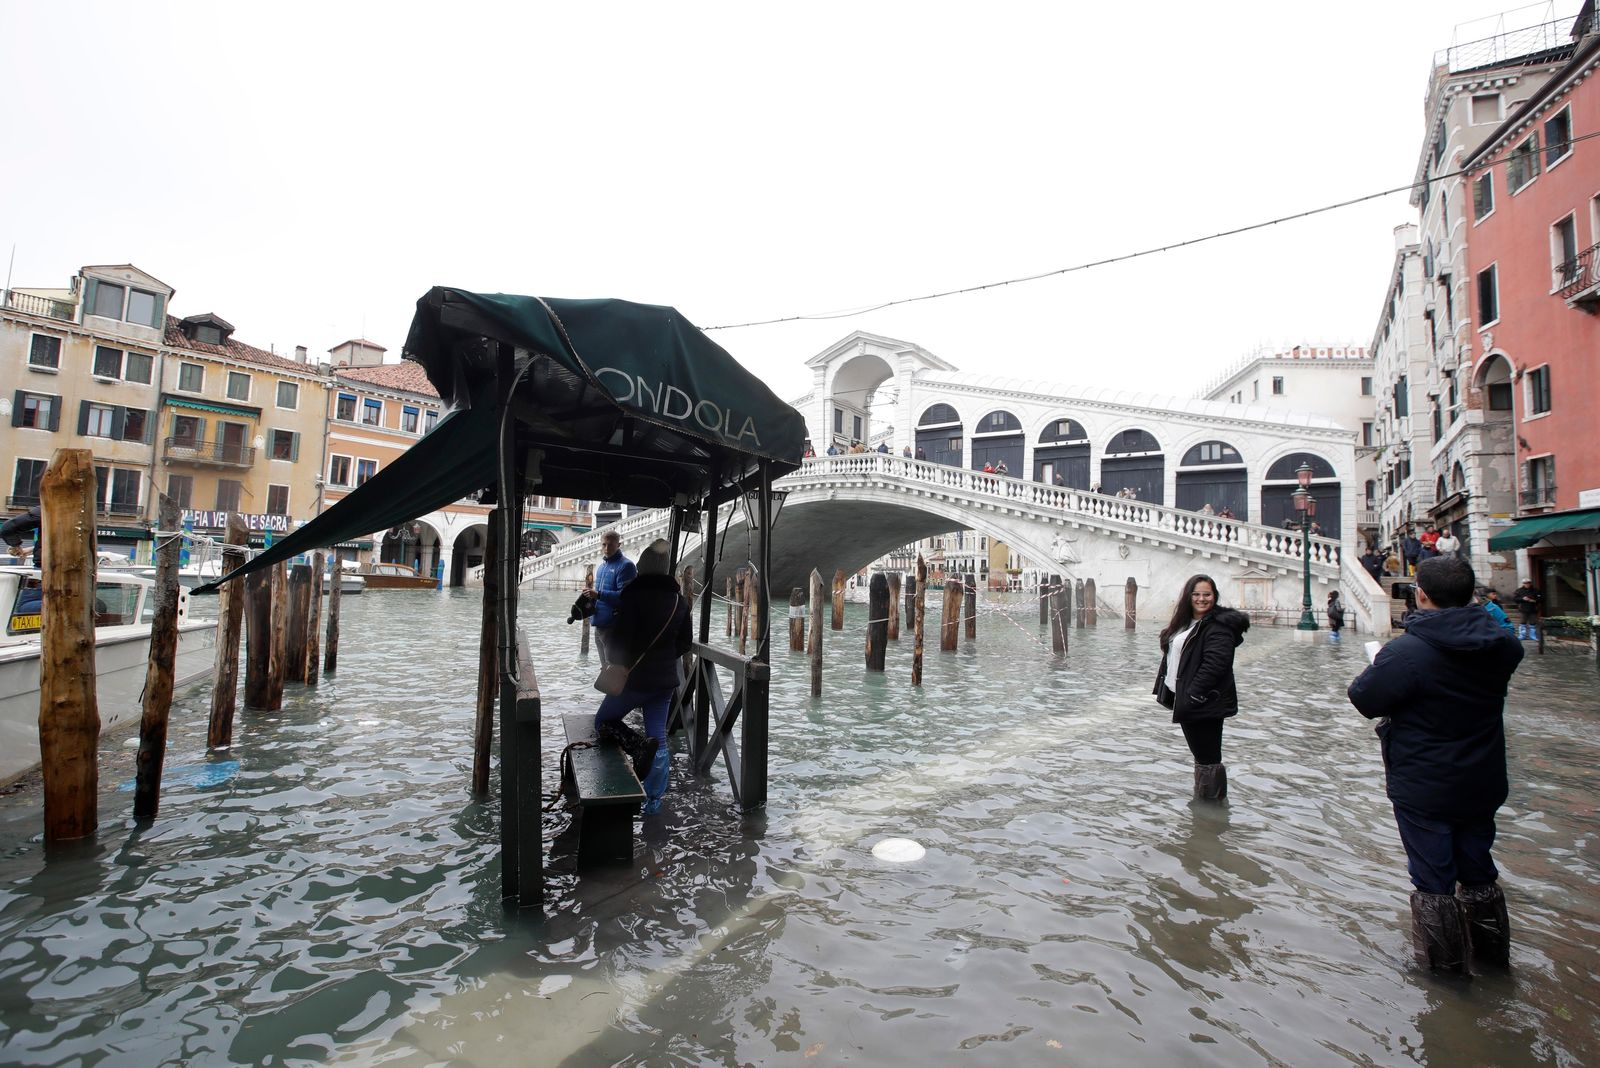 Tourists take pictures in front of the Rialto Bridge while wading through high water, in Venice, Wednesday, Nov. 13, 2019. The high-water mark hit 187 centimeters (74 inches) late Tuesday, Nov. 12, 2019, meaning more than 85% of the city was flooded. The highest level ever recorded was 194 centimeters (76 inches) during infamous flooding in 1966. (AP Photo/Luca Bruno)